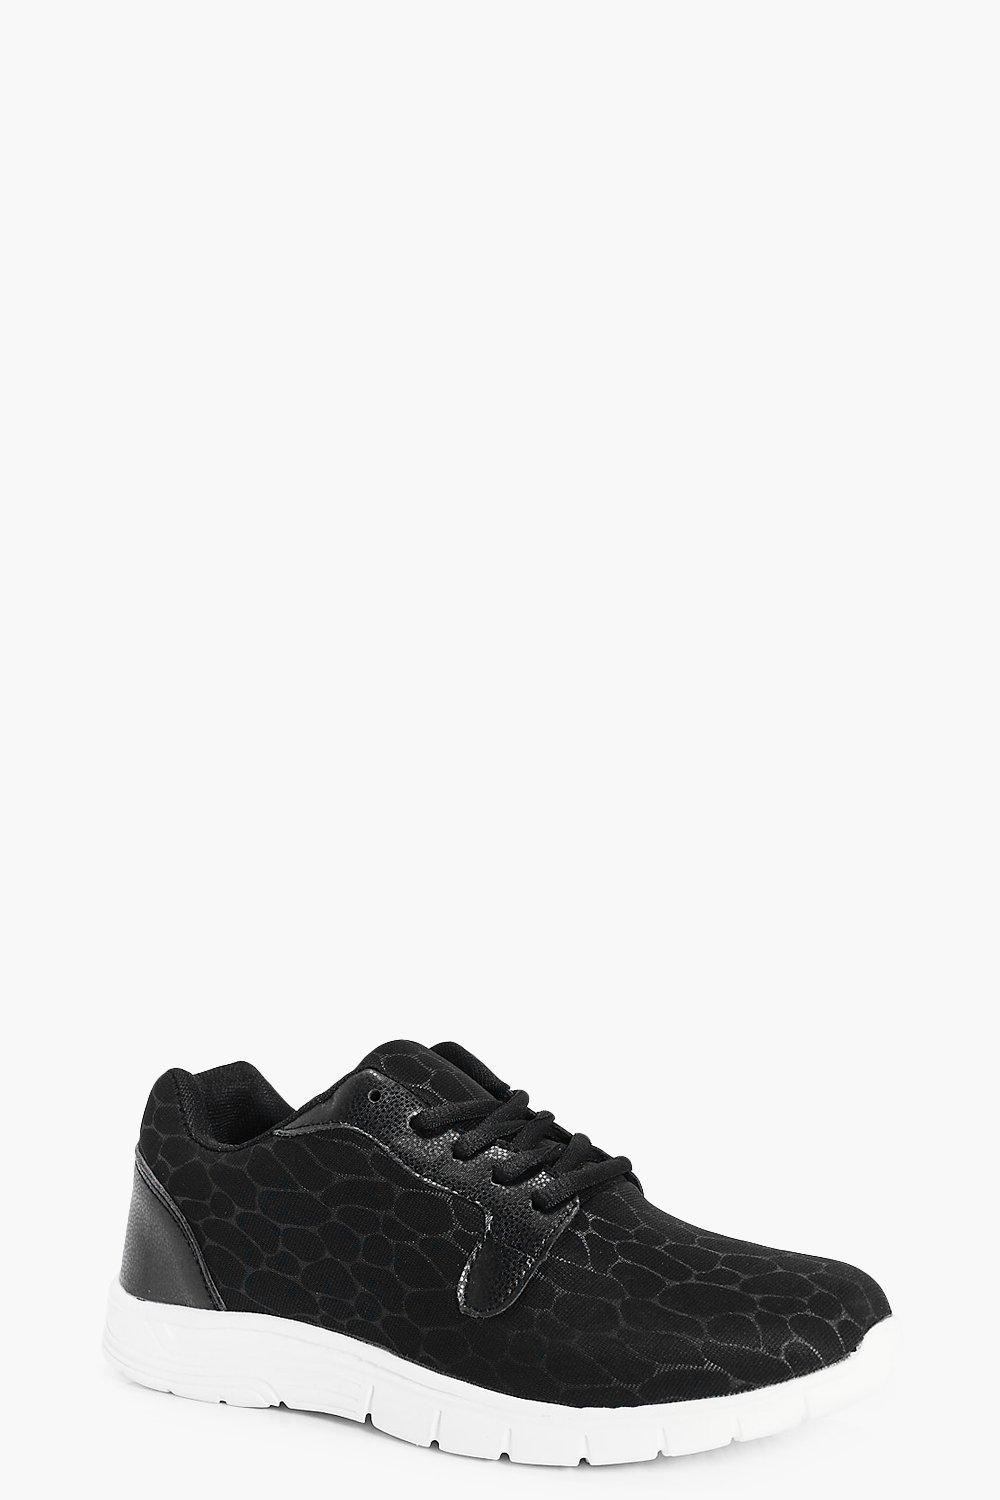 Imogen Animal Contrast Lace Up Trainer